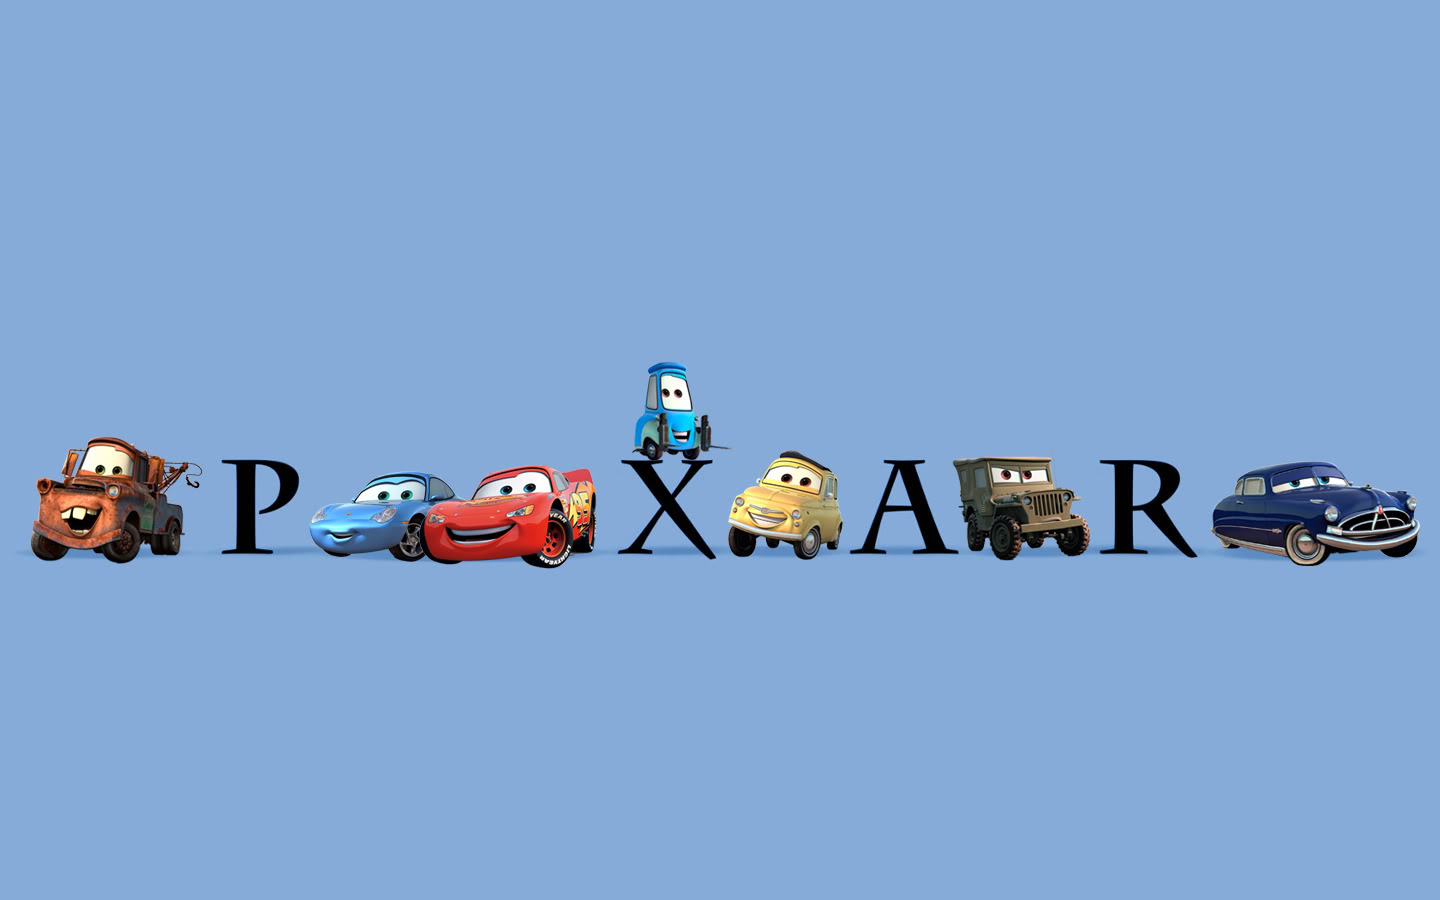 fun cars & pixar wallpaper for your computer & phones | take five a day